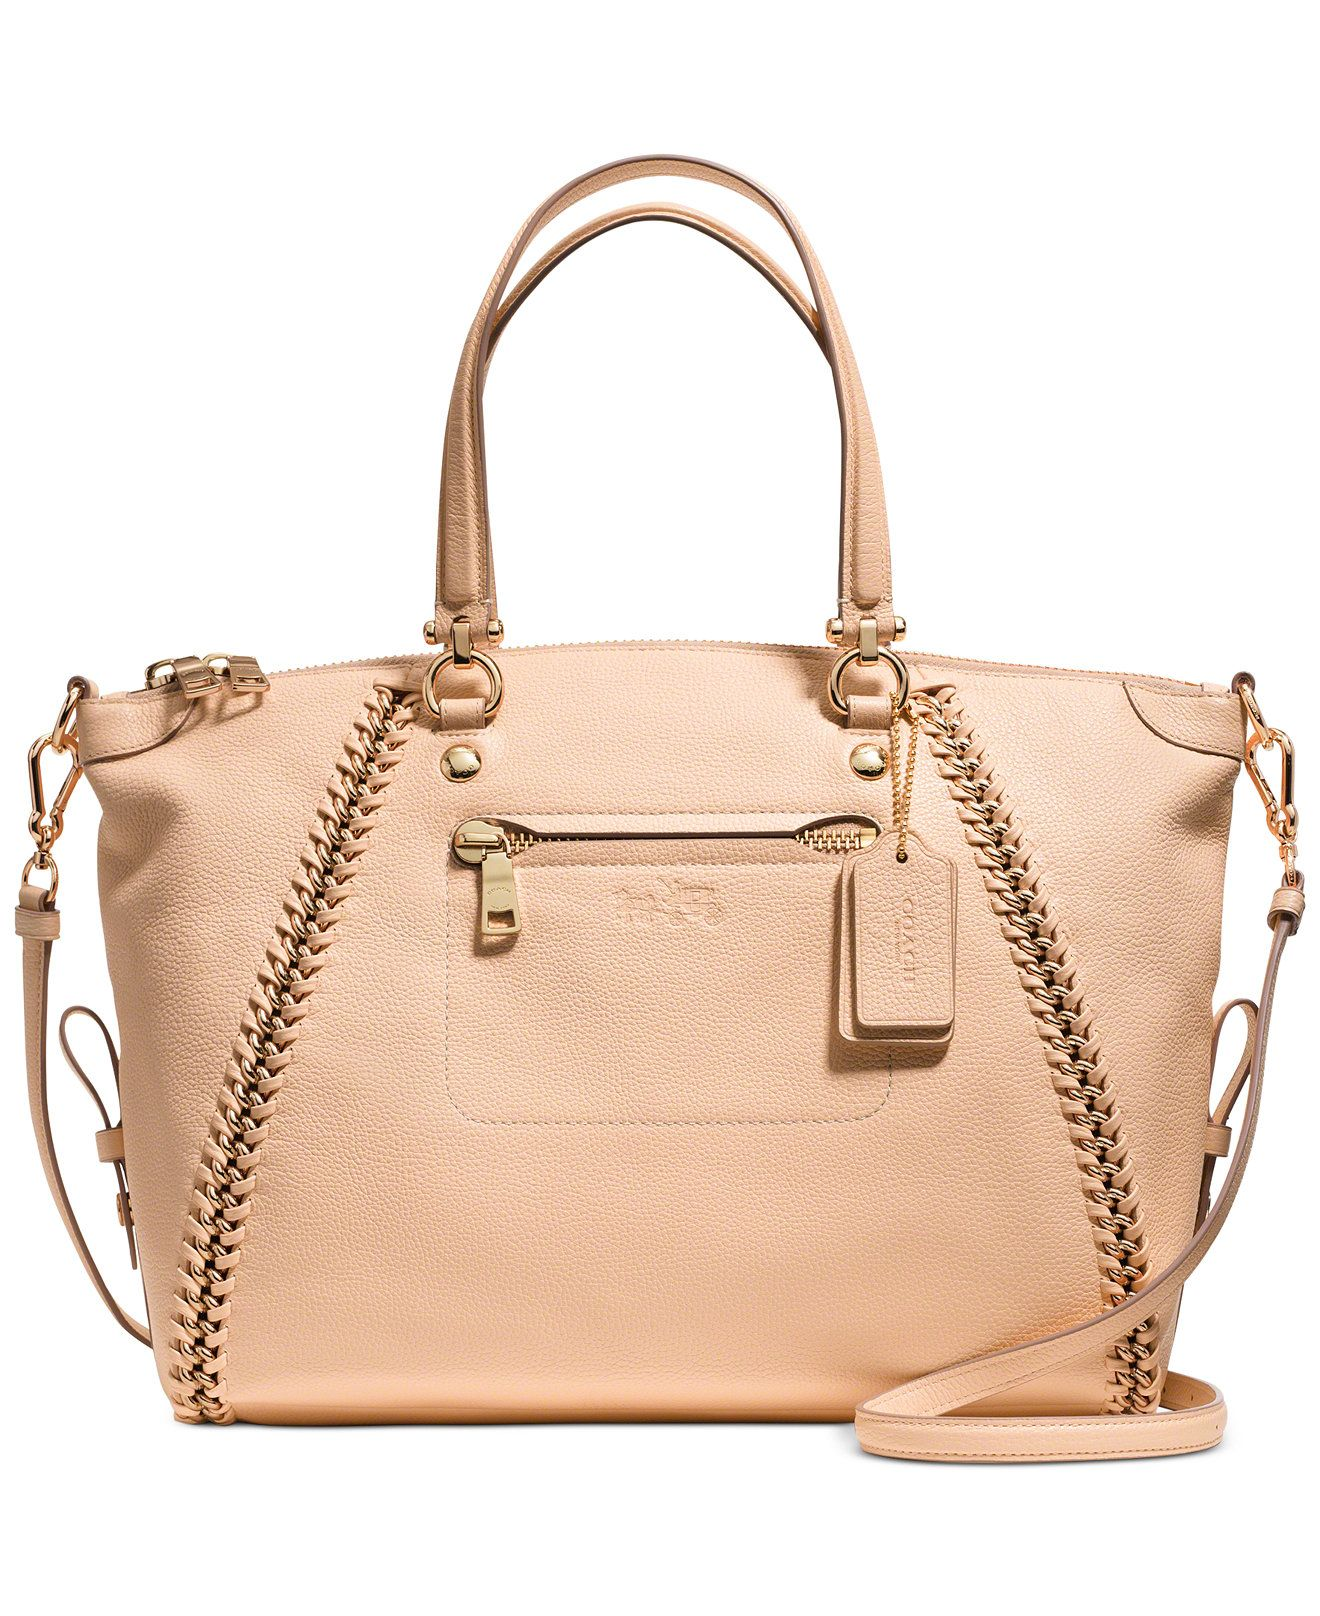 89fecaf9b96b COACH PRAIRIE SATCHEL IN WHIPLASH LEATHER - Sale   Clearance - Handbags    Accessories - Macy s